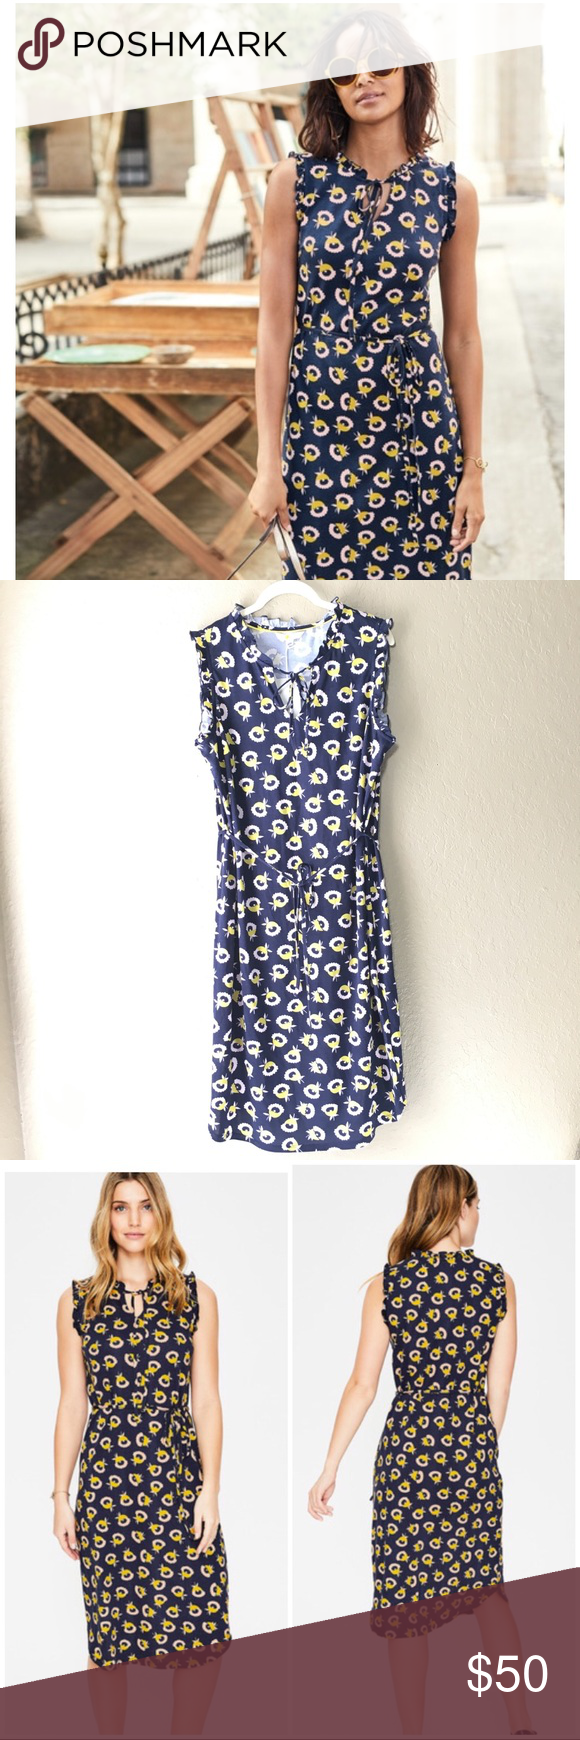 "a544beee8e2 NWT BODEN Lois Jersey Dress J0207 Navy US 12R Bust 21.5"", length 44 ..."